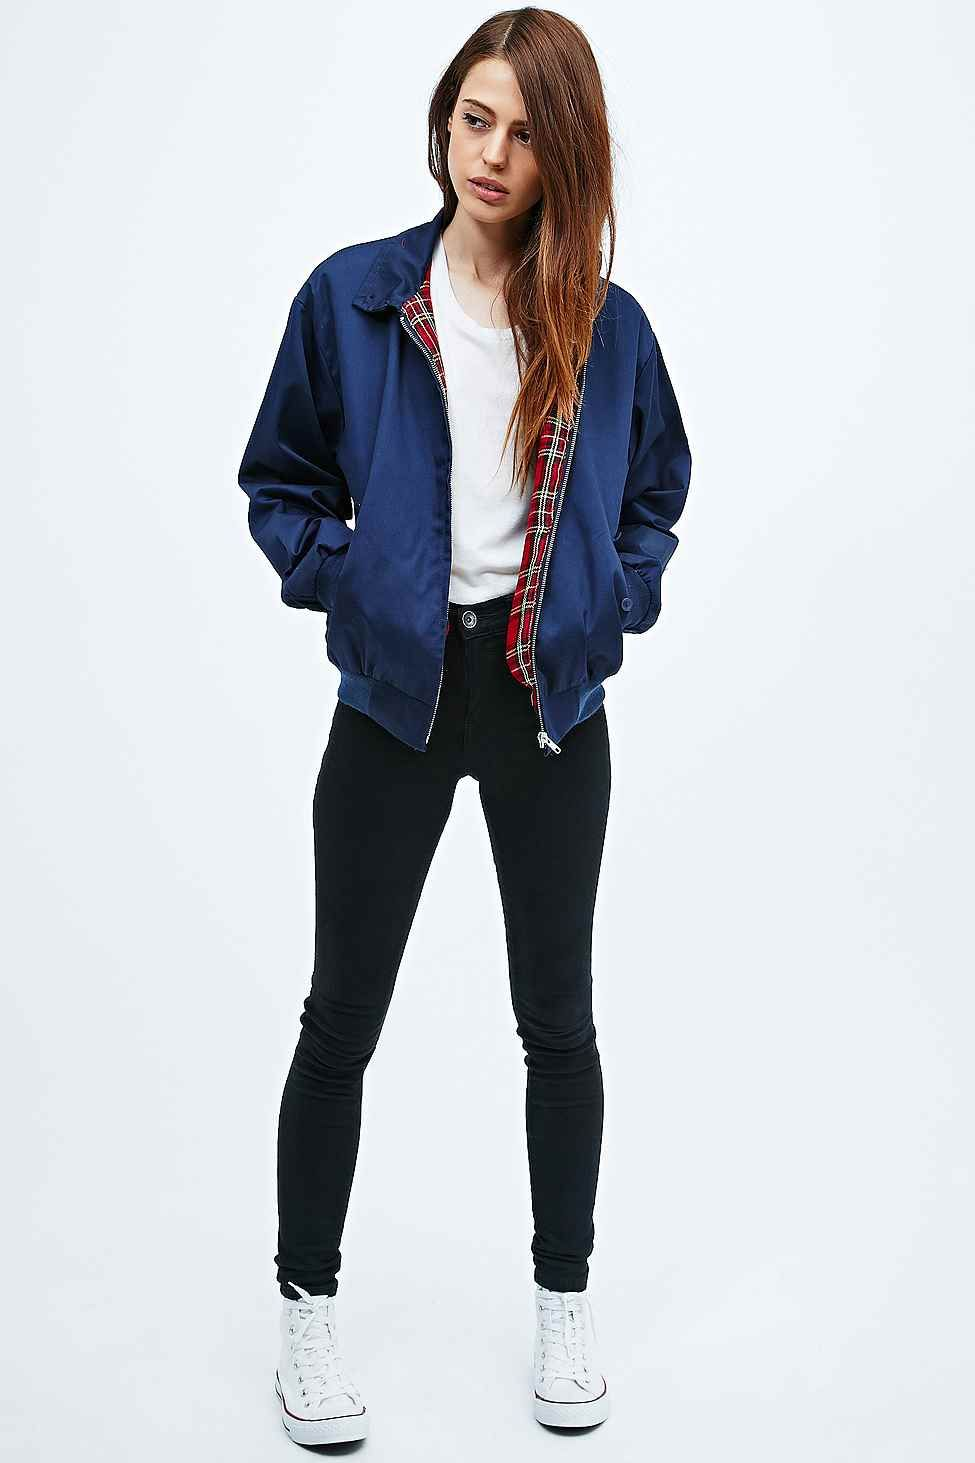 Urban Renewal Vintage Surplus u2013 Harrington-Jacke in Marineblau | Harrington jacket Urban ...